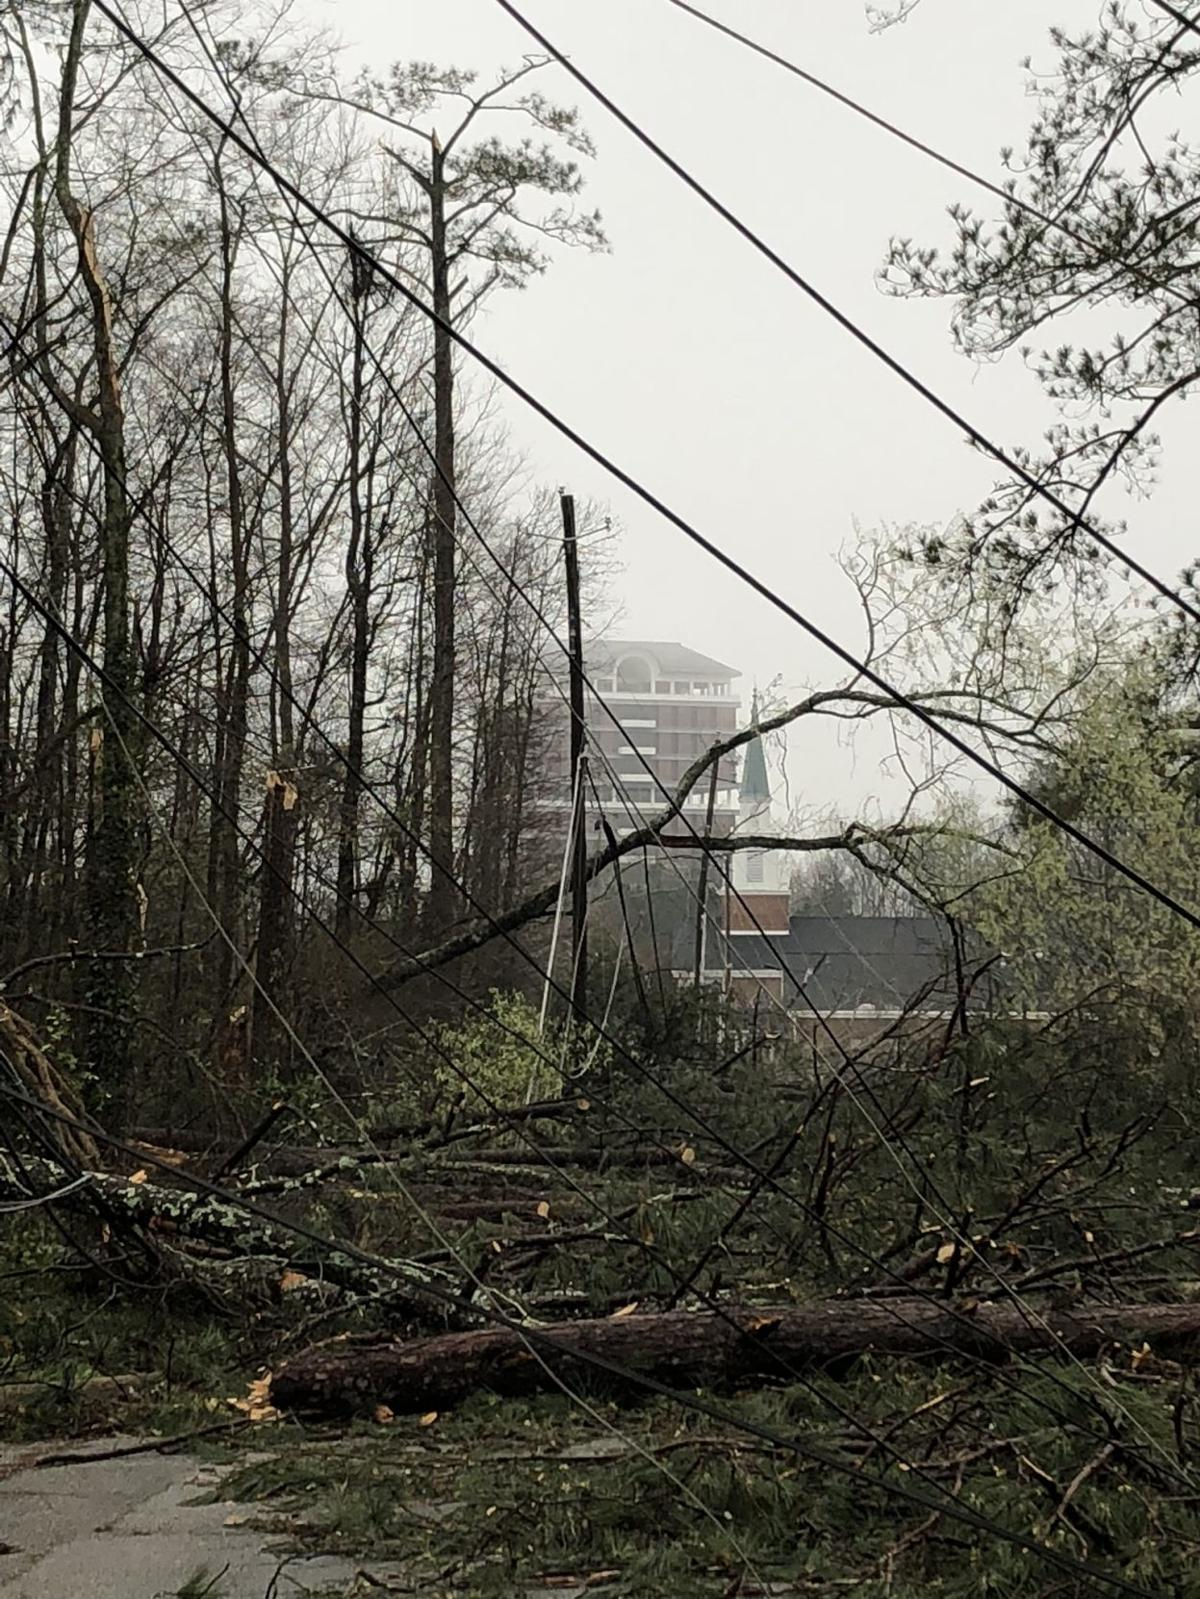 Mayor expects storm damage to keep lights off for a few days; No fatalities reported as of this morning